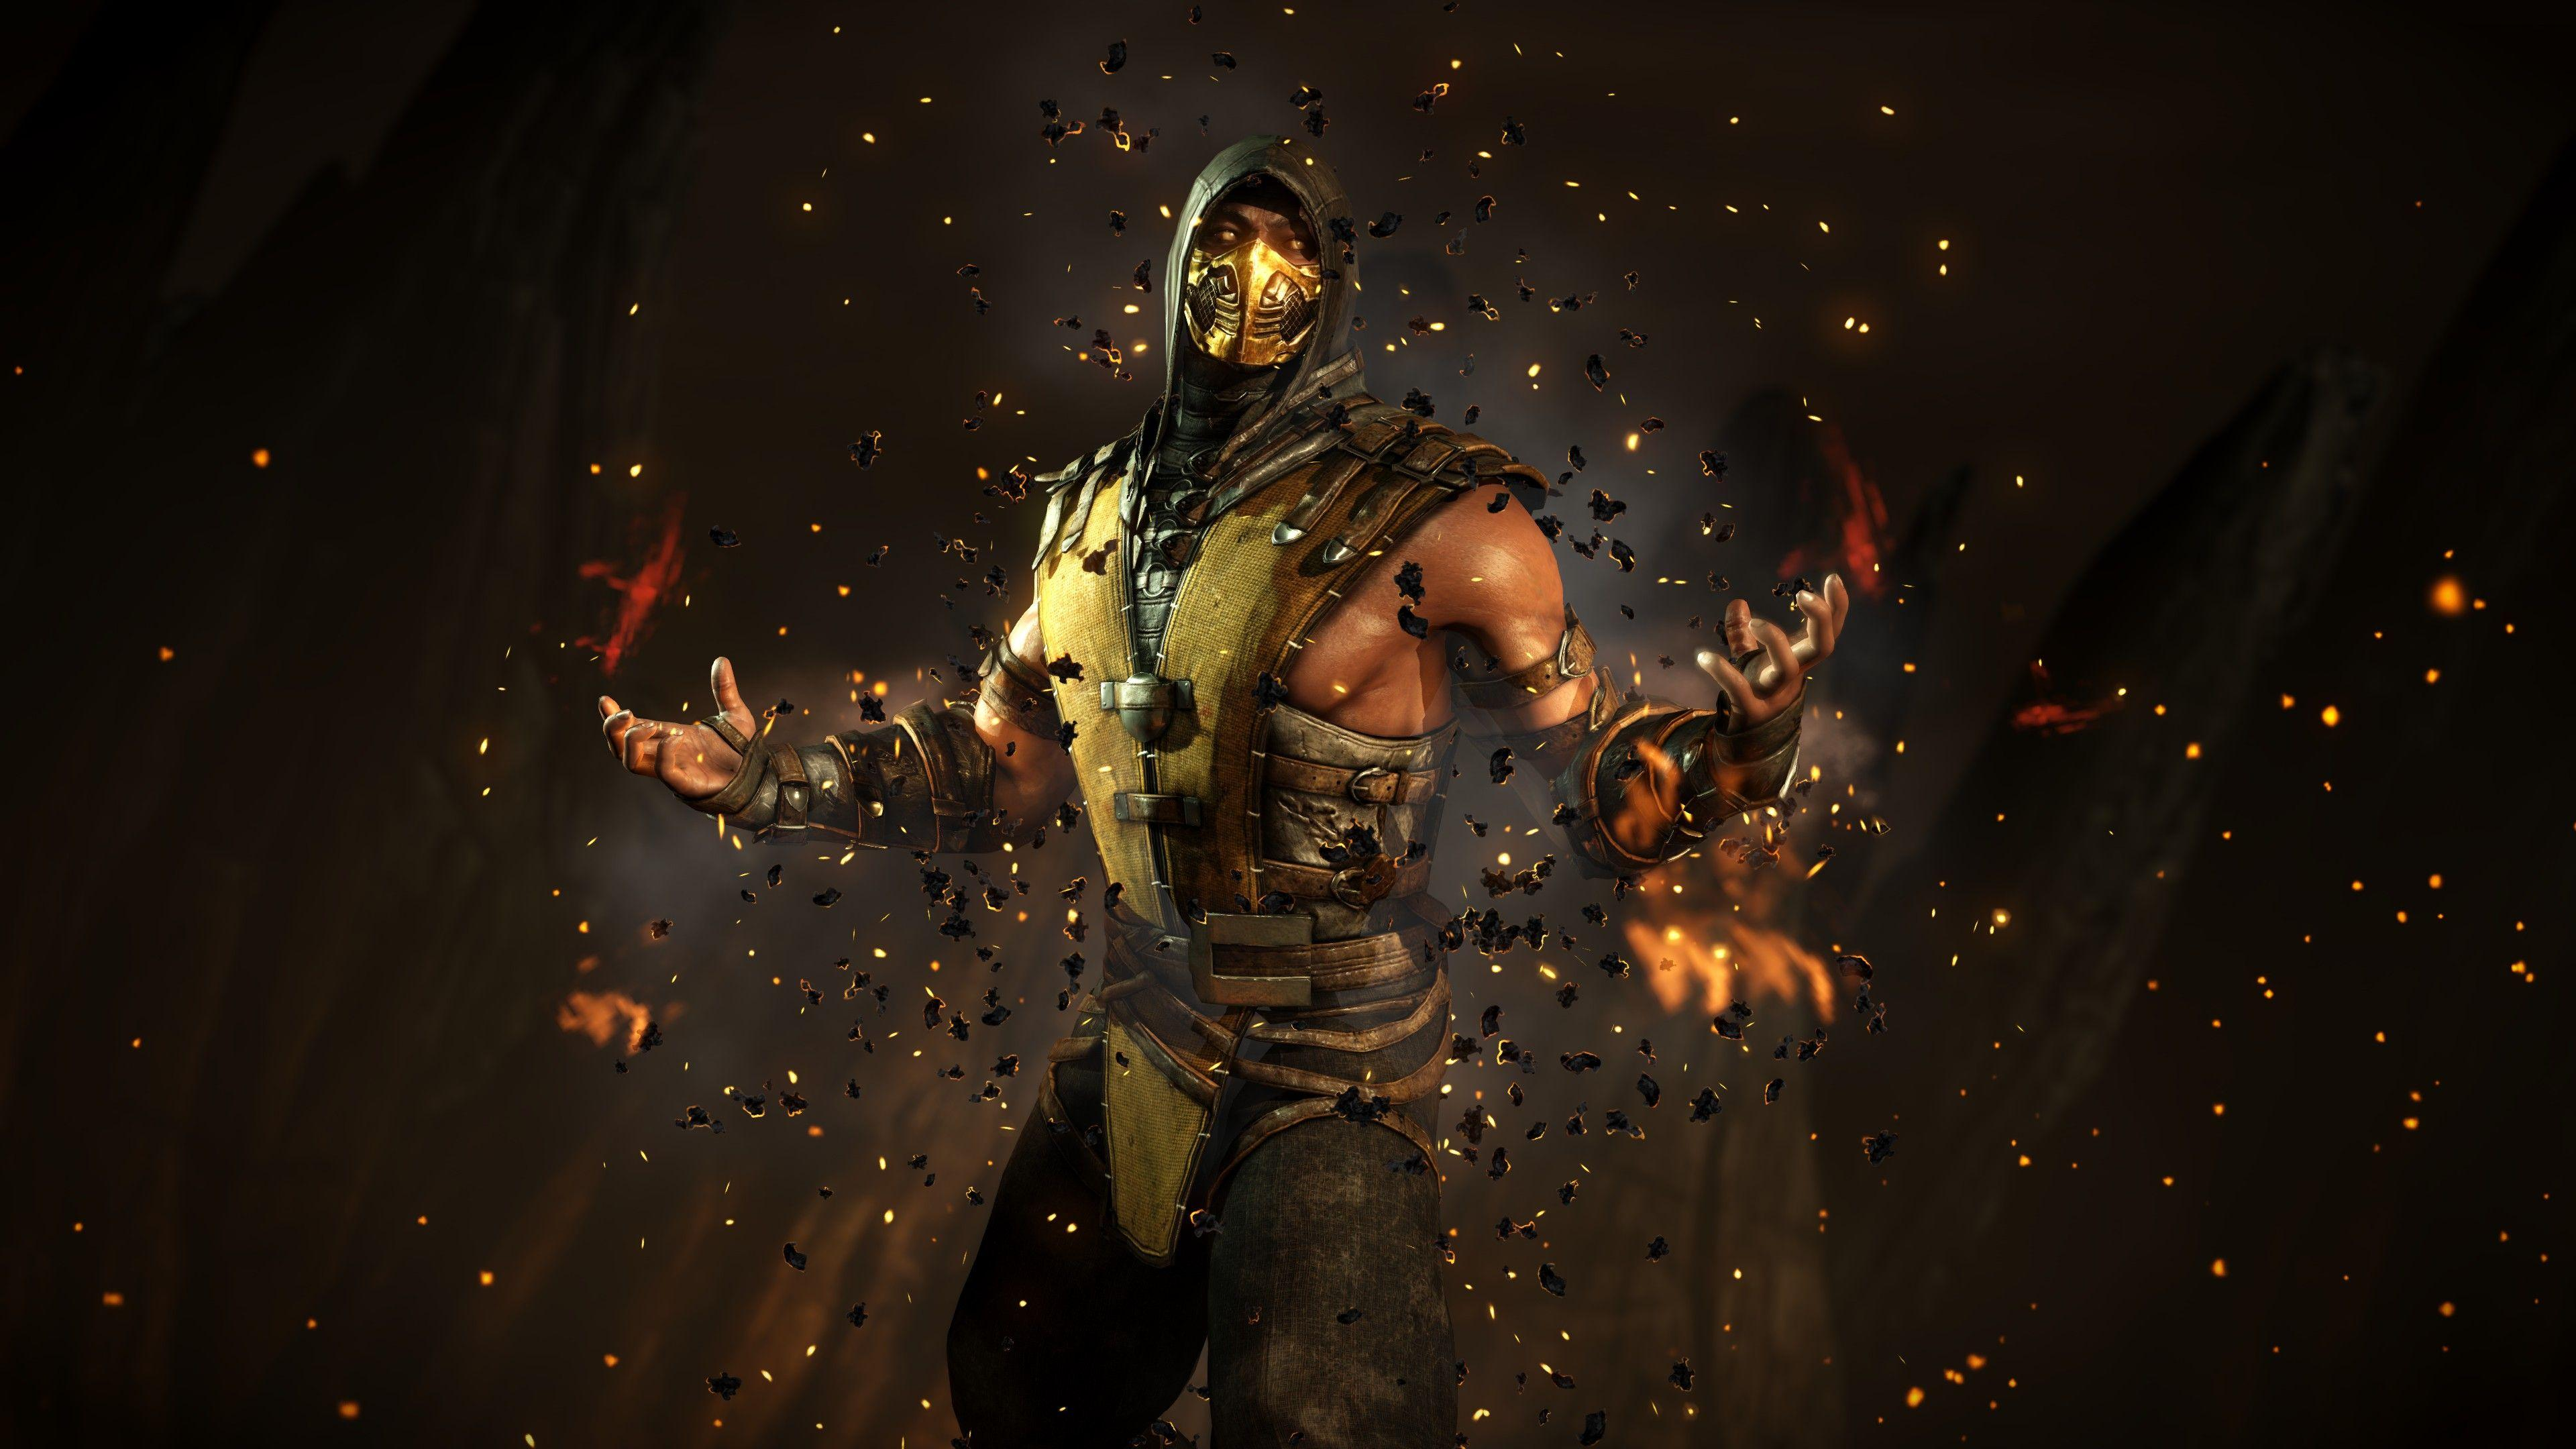 mortal kombat x scorpion character mortal kombat wallpapers and